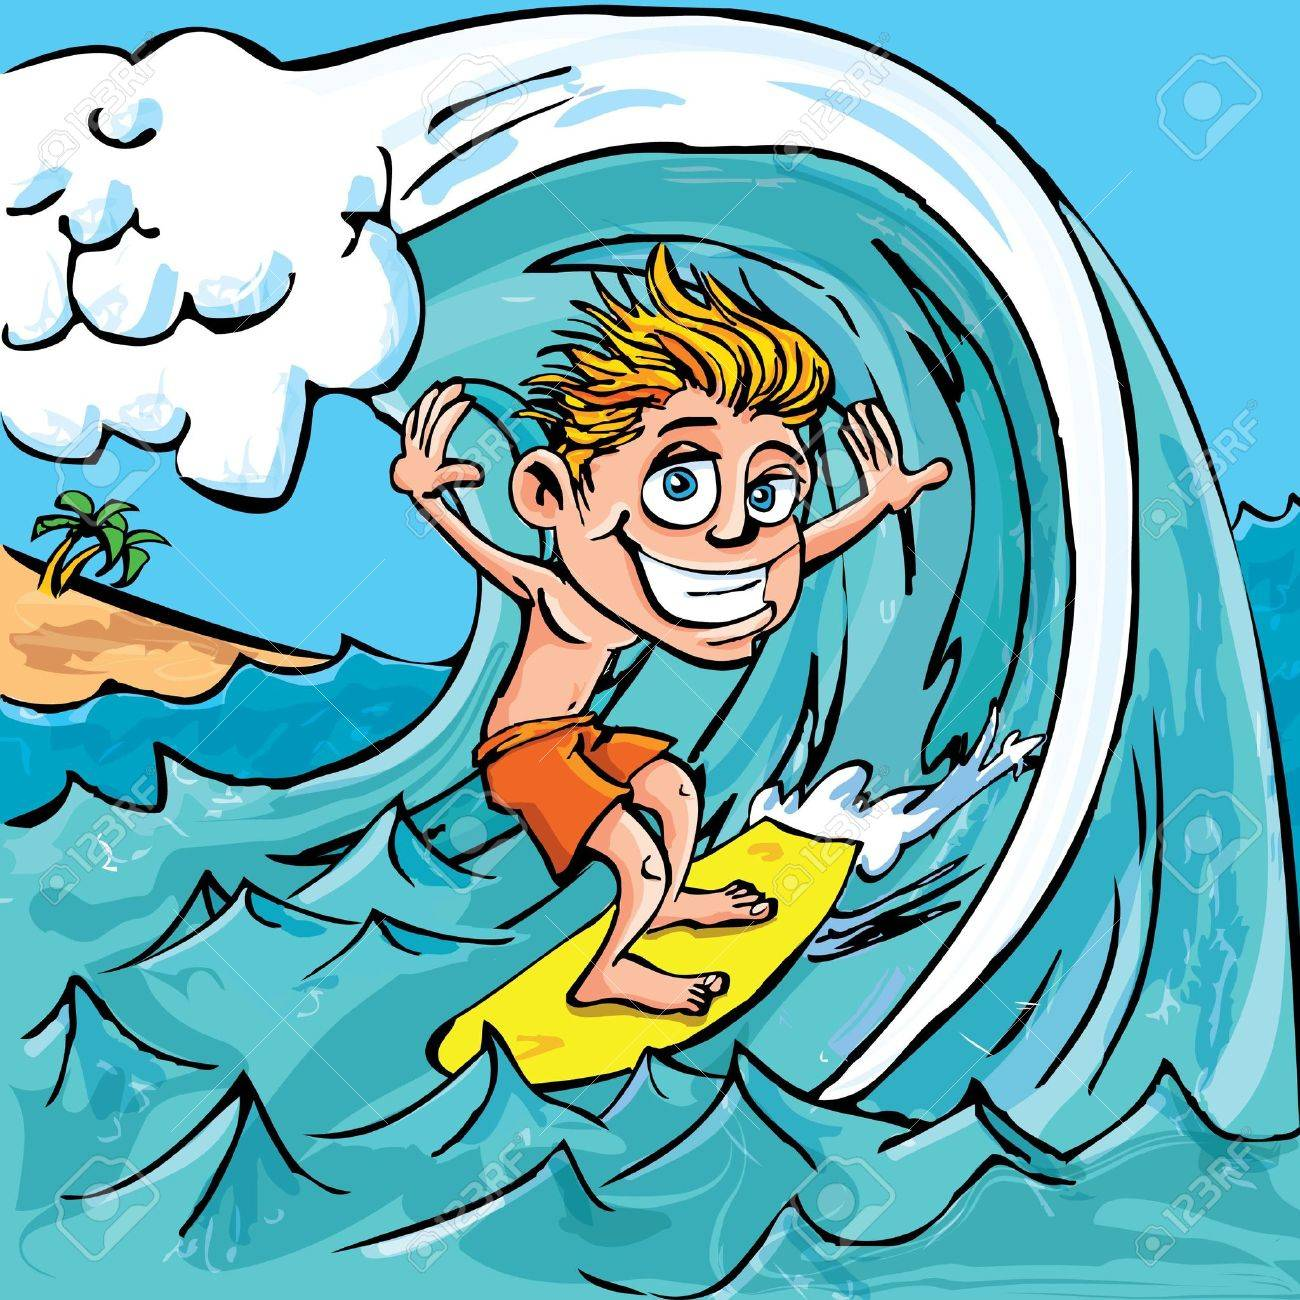 Cartoon boy surfing a wave in the sea Stock Vector - 9290111